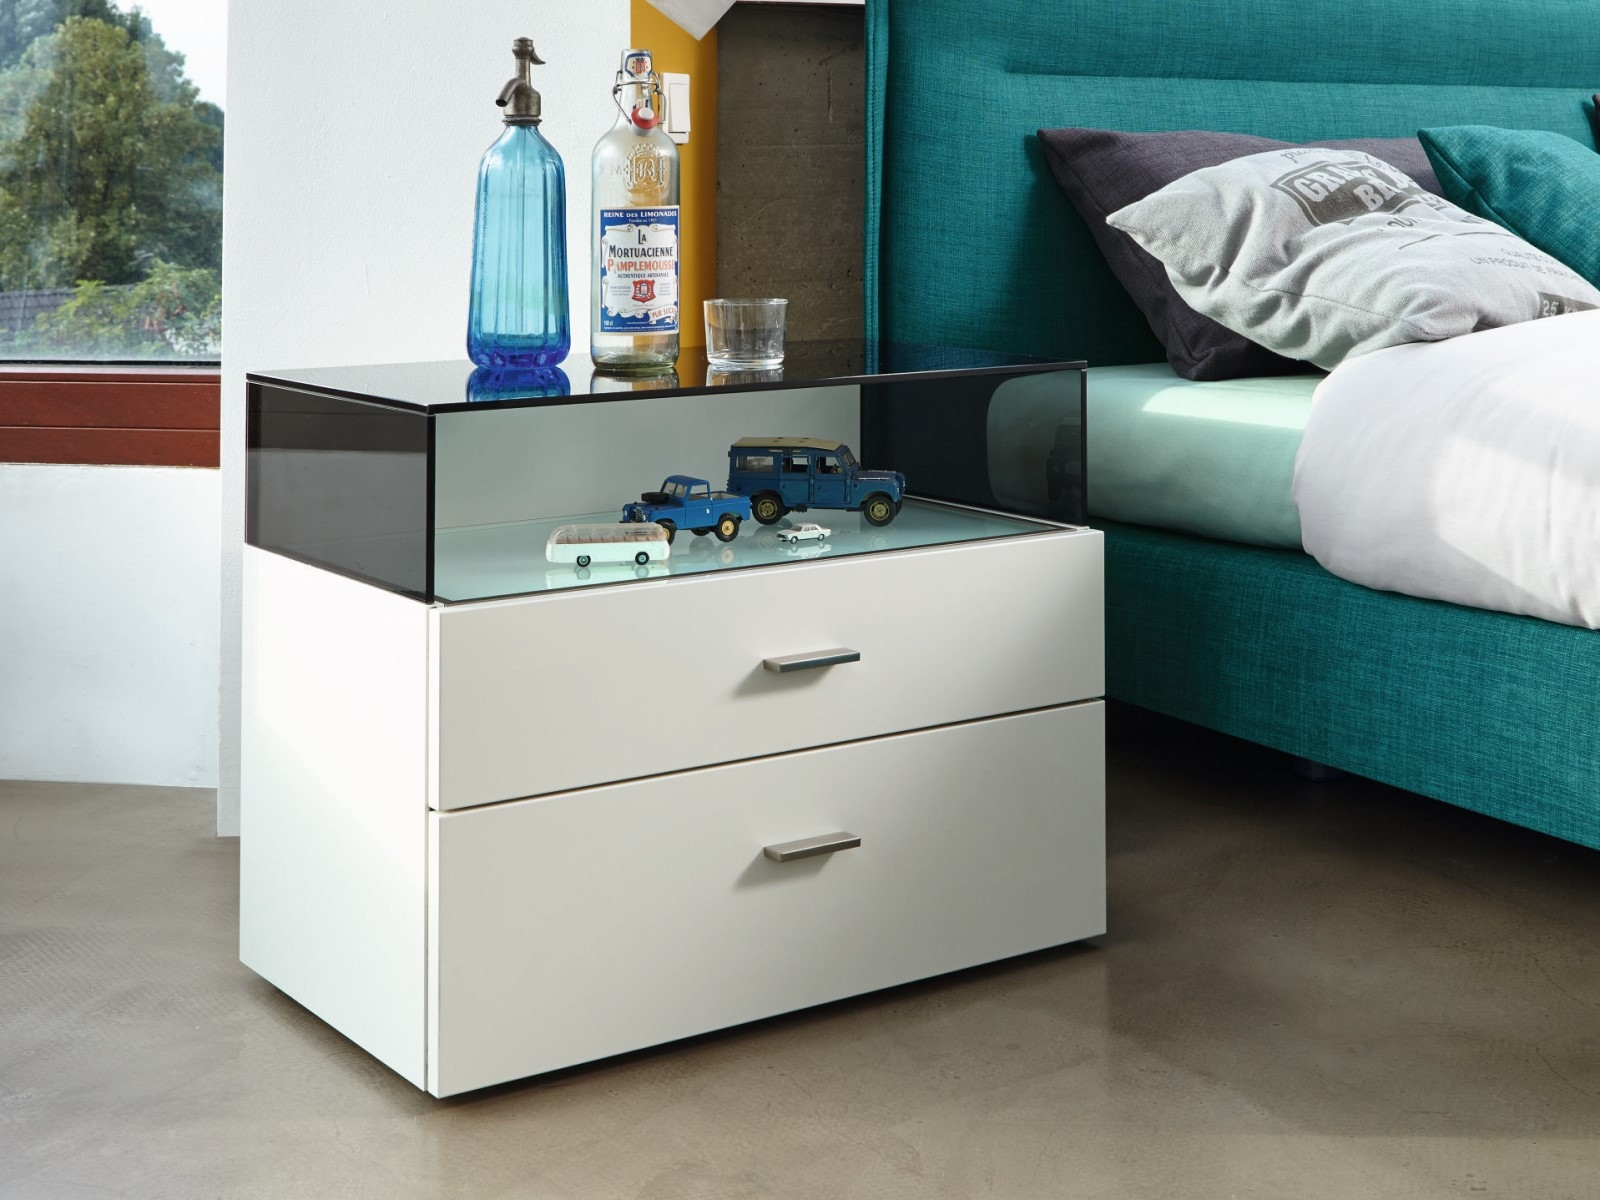 Hülsta Now No14 Bedside Table With Glass Bonnet Innoshop